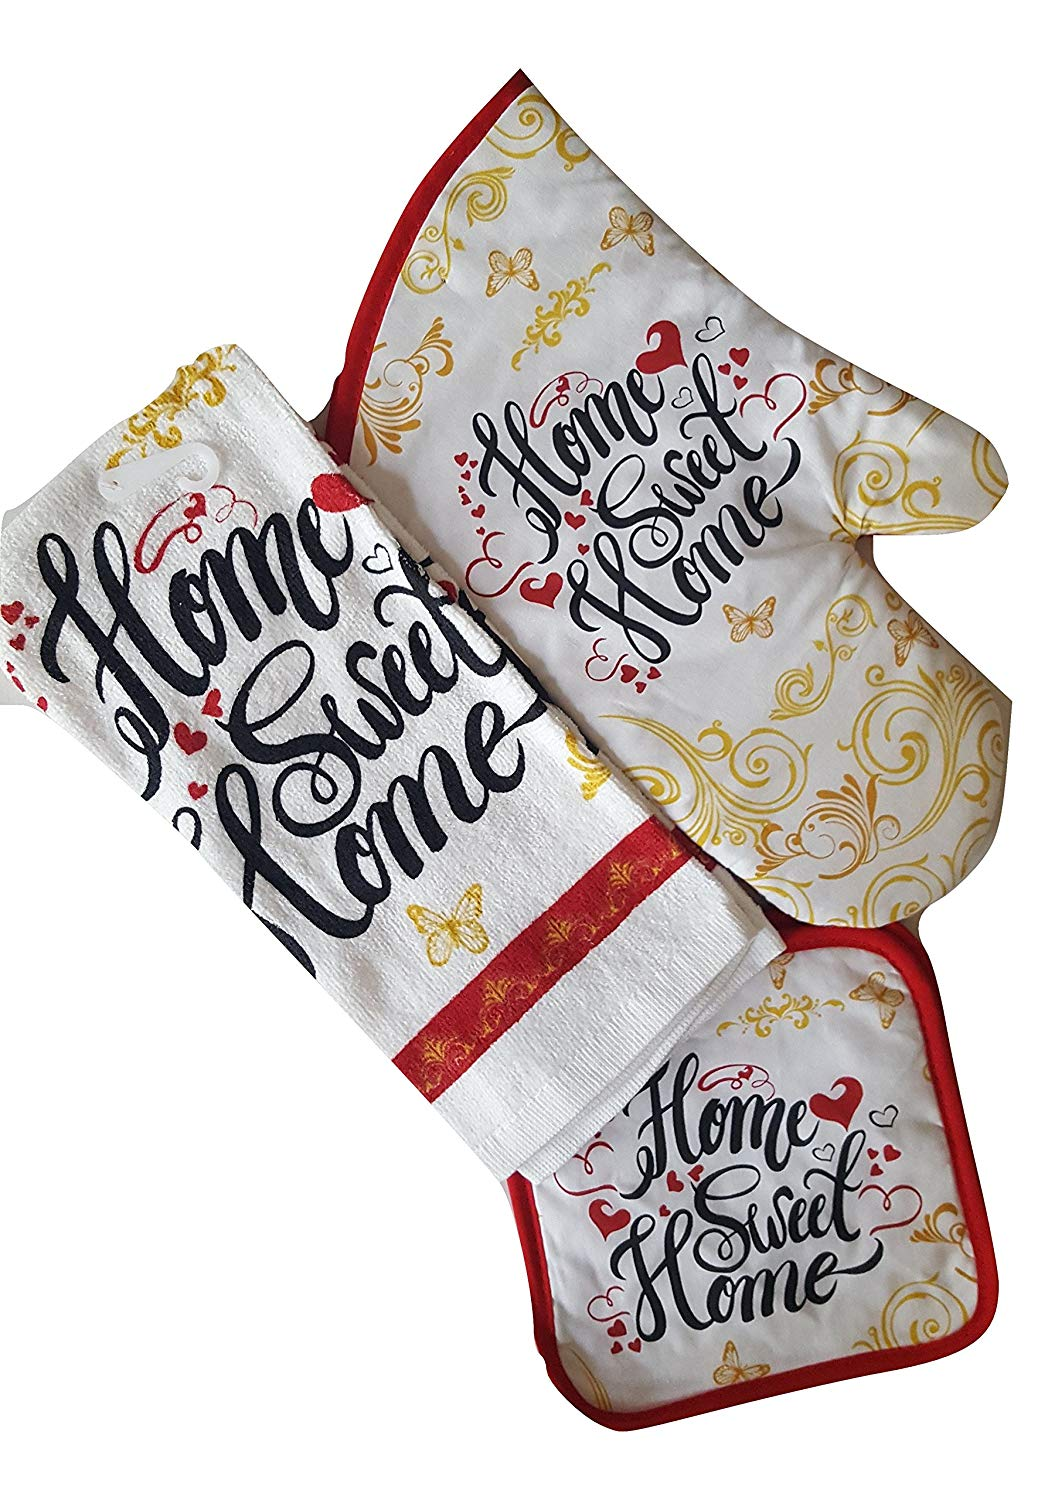 Home Sweet Home Themed Kitchen Linen Bundle Set - Four (4) Piece Set Includes One (1) Kitchen Towels, Two (2) Pot Holders, One (1) Oven Mitt